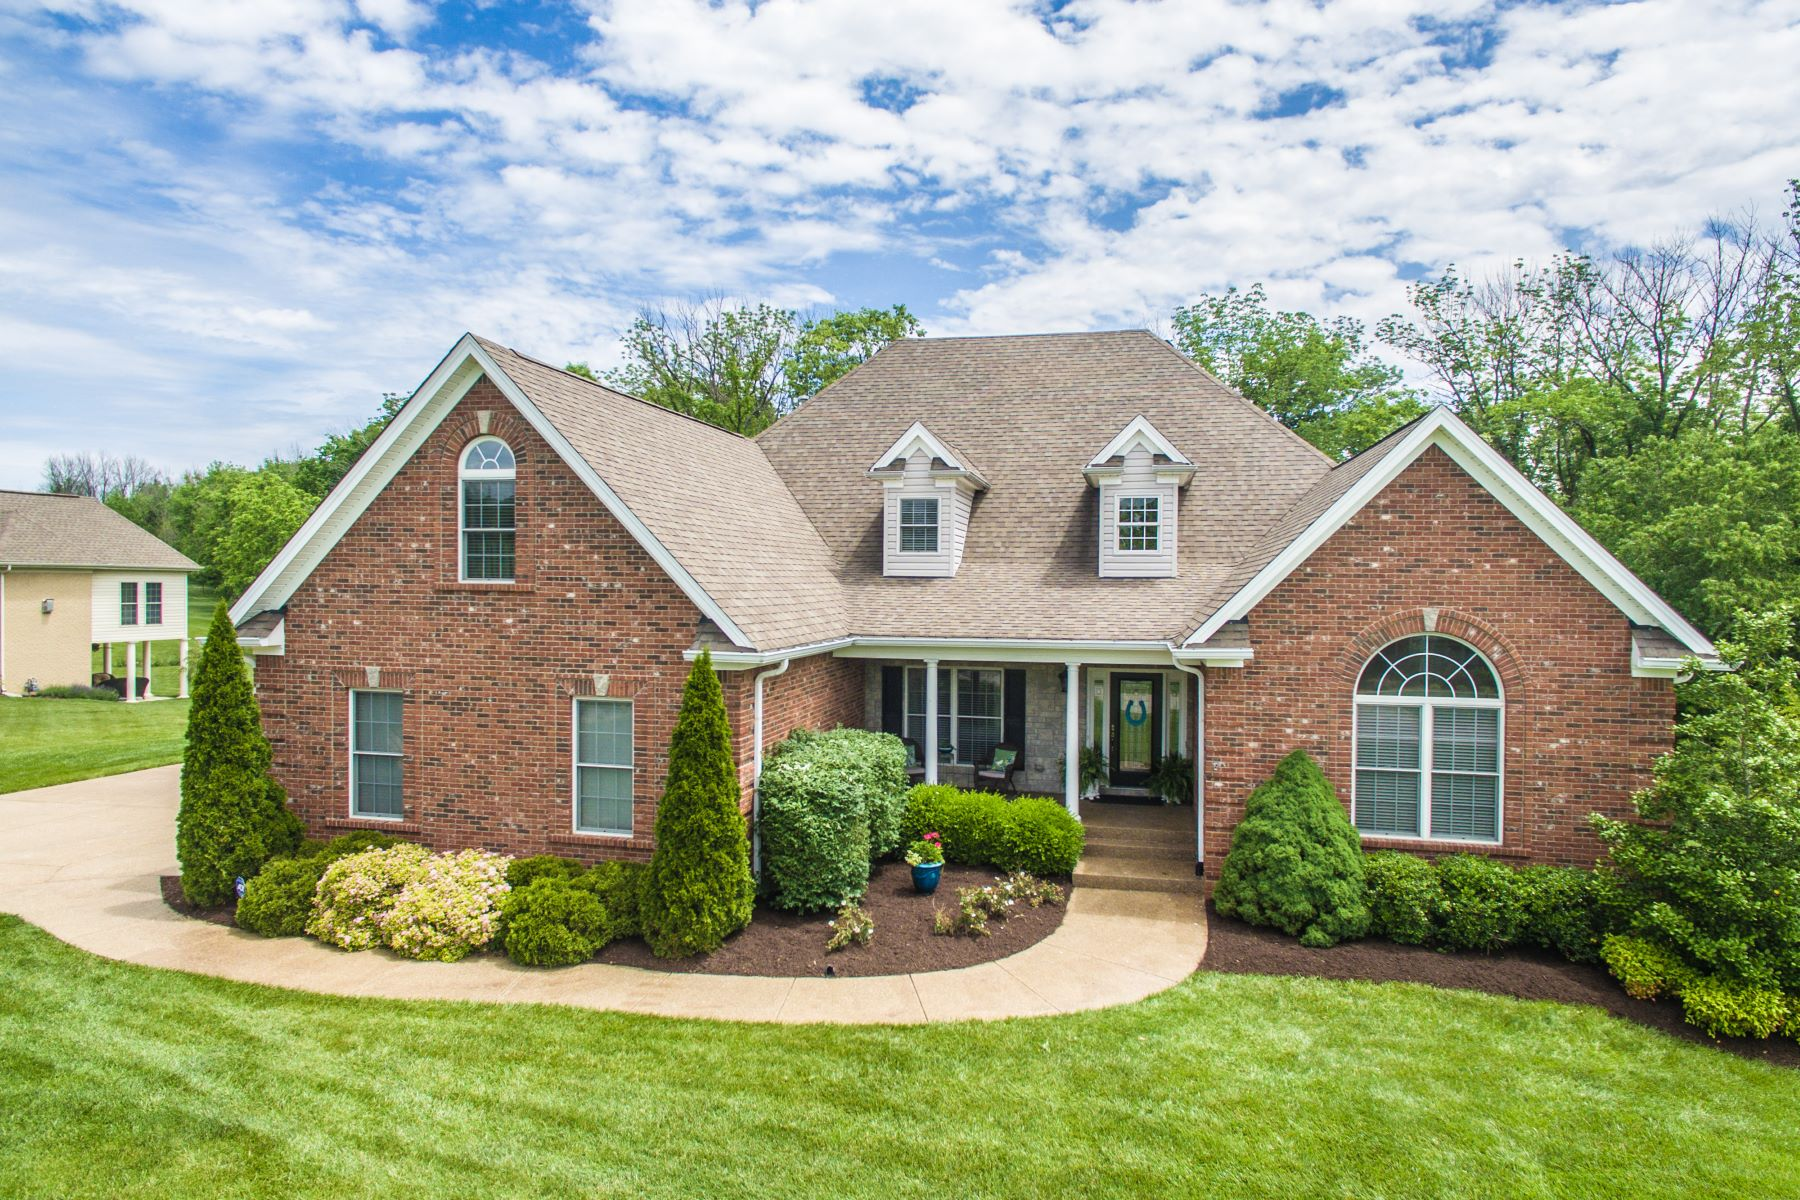 Single Family Home for Sale at 4004 Ballard Woods Drive Smithfield, Kentucky 40068 United States